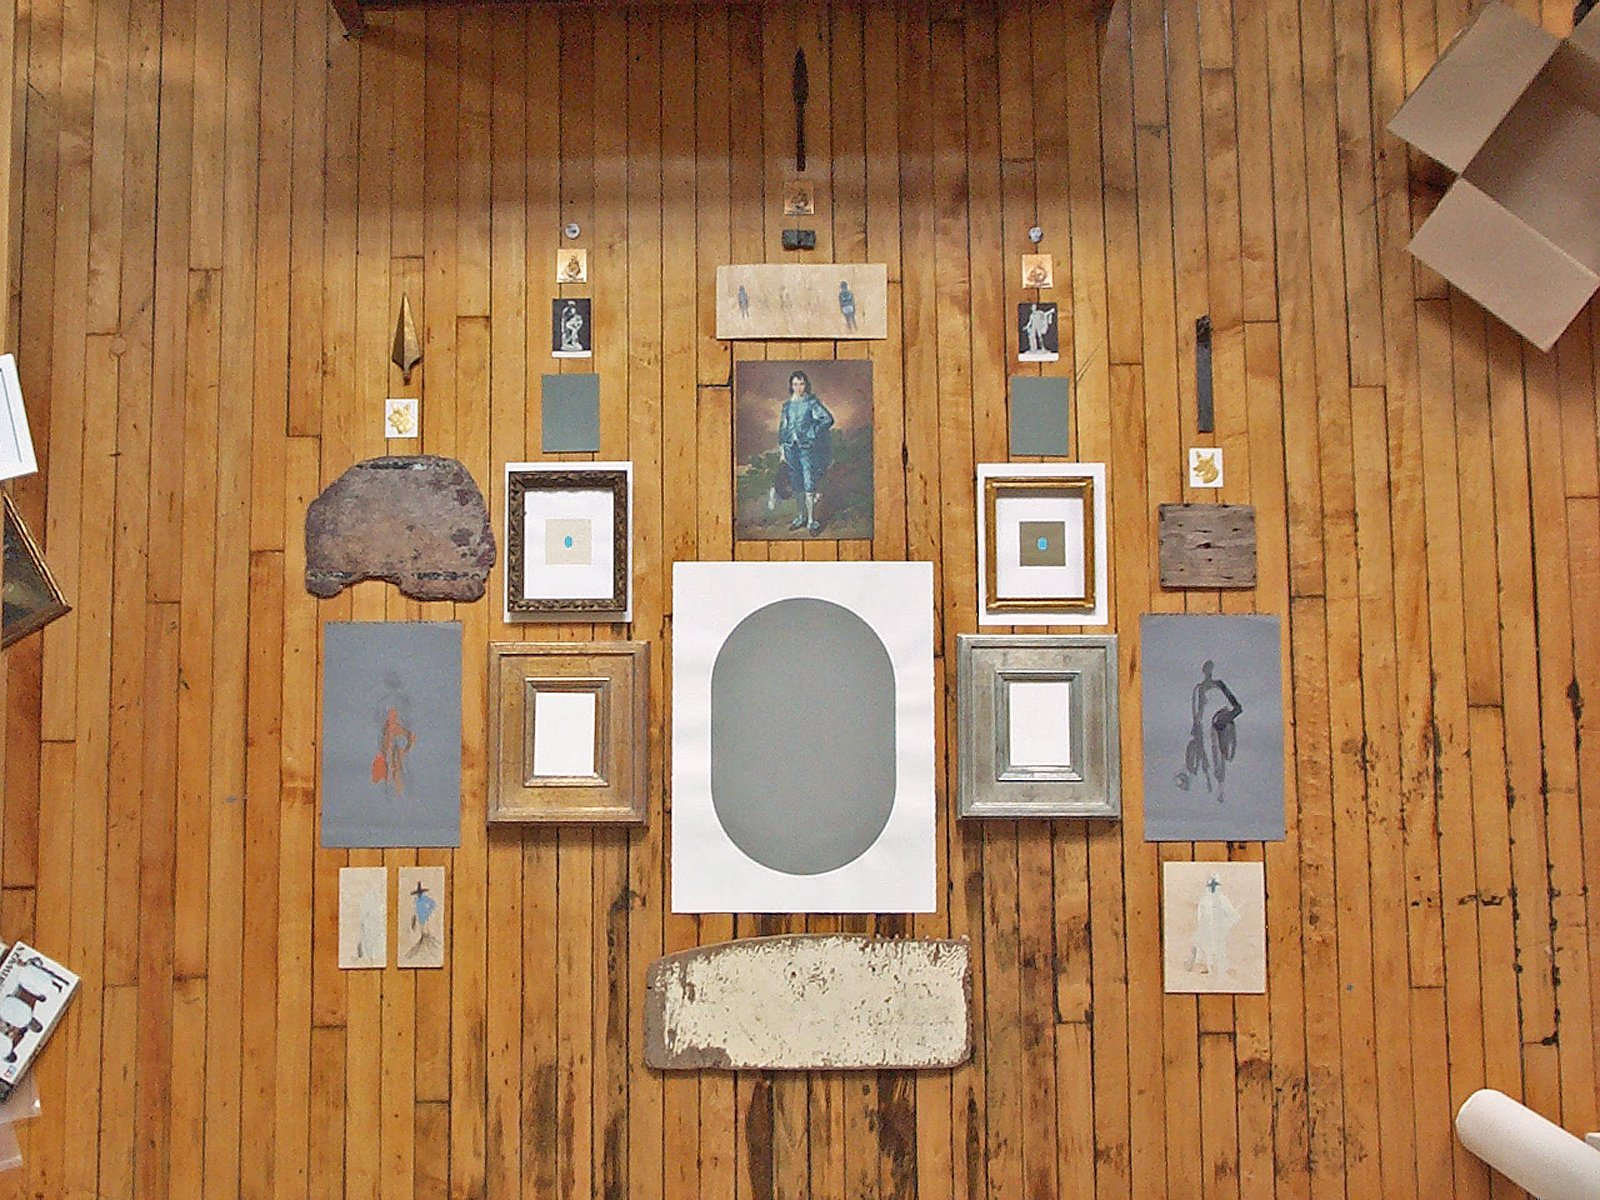 View from above of paintings, drawings and objects arranged on a wood floor.